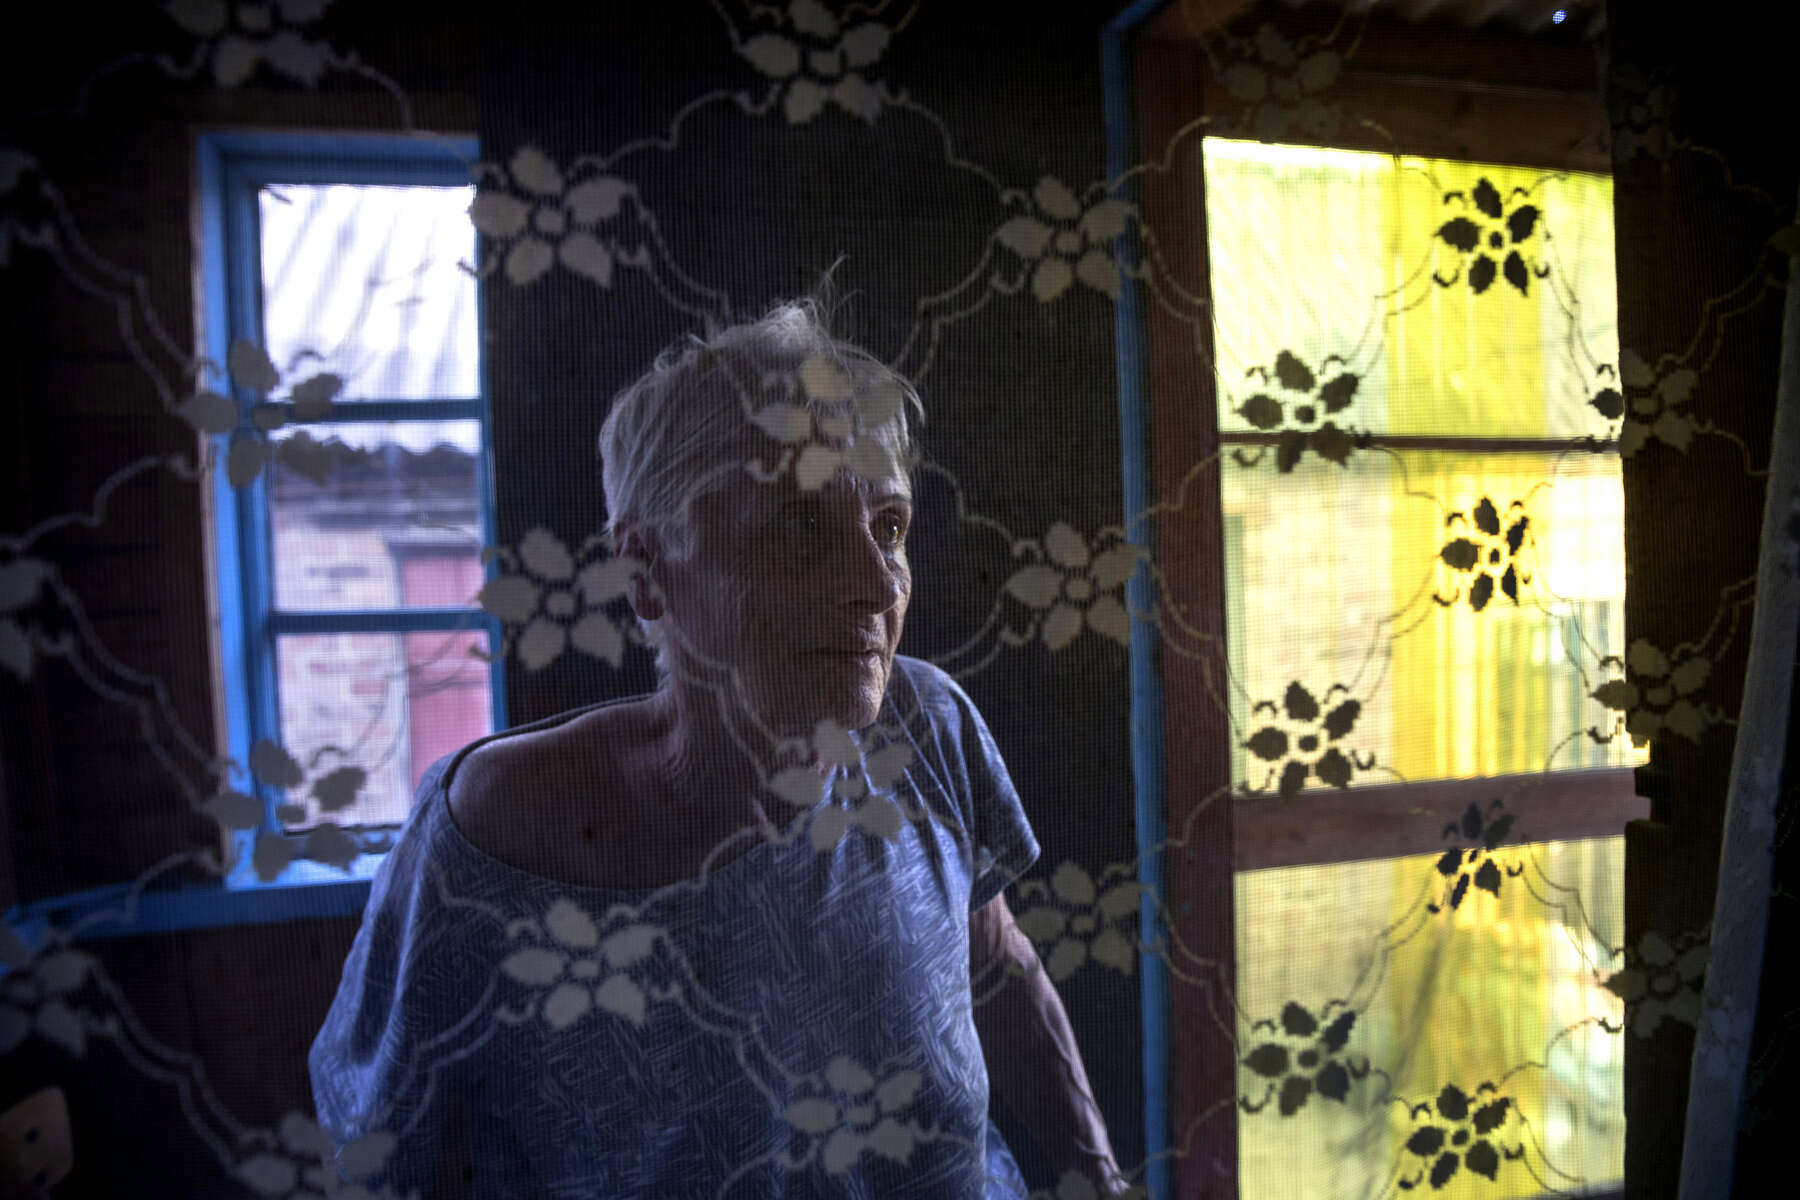 Chasov Yar, Donetsk region: Lyudmila Yevgenievna, age 64  from Chasov Yar is seen by windows at a residence for the elderly in Chasov Yar, Eastern Ukraine. All her relatives have died and she was left alone .Evgeniy Tkachev has founded the elderly care facility with his own money. He bought two private houses across the street from each other. One house is for elderly women, another for men. {quote}I evacuate elderly people from the stress affect by the conflict.{quote}These people have nowhere to go. Over 50% of the elderly here do not receive their pensions due to the loss of the documents.